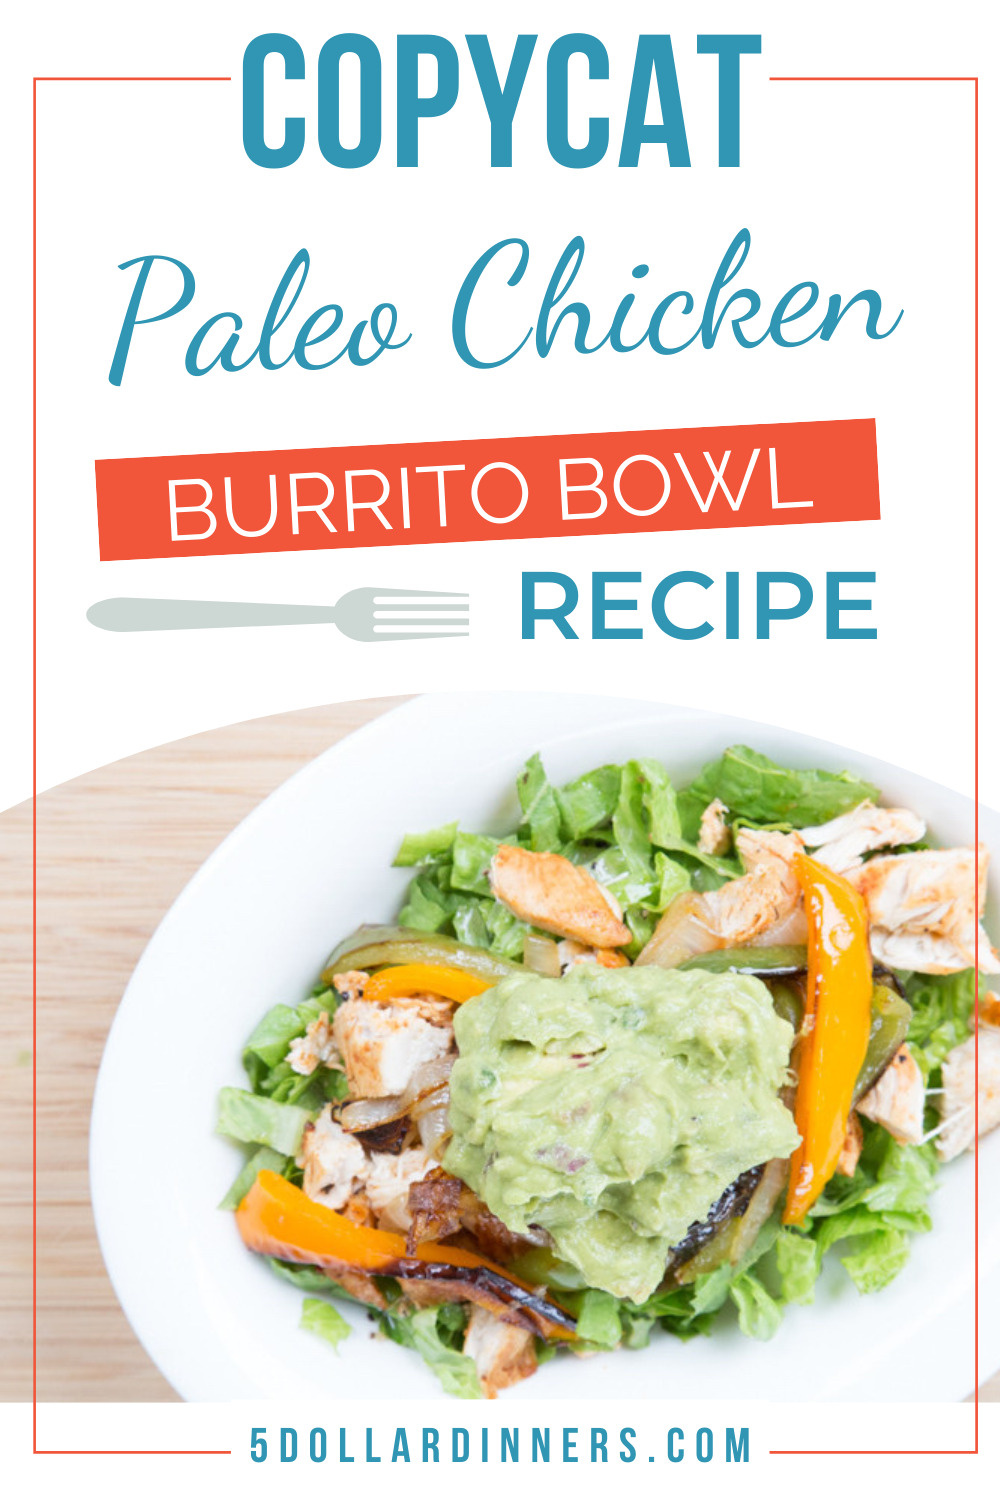 copycat paleo chipotle chicken burrito bowl